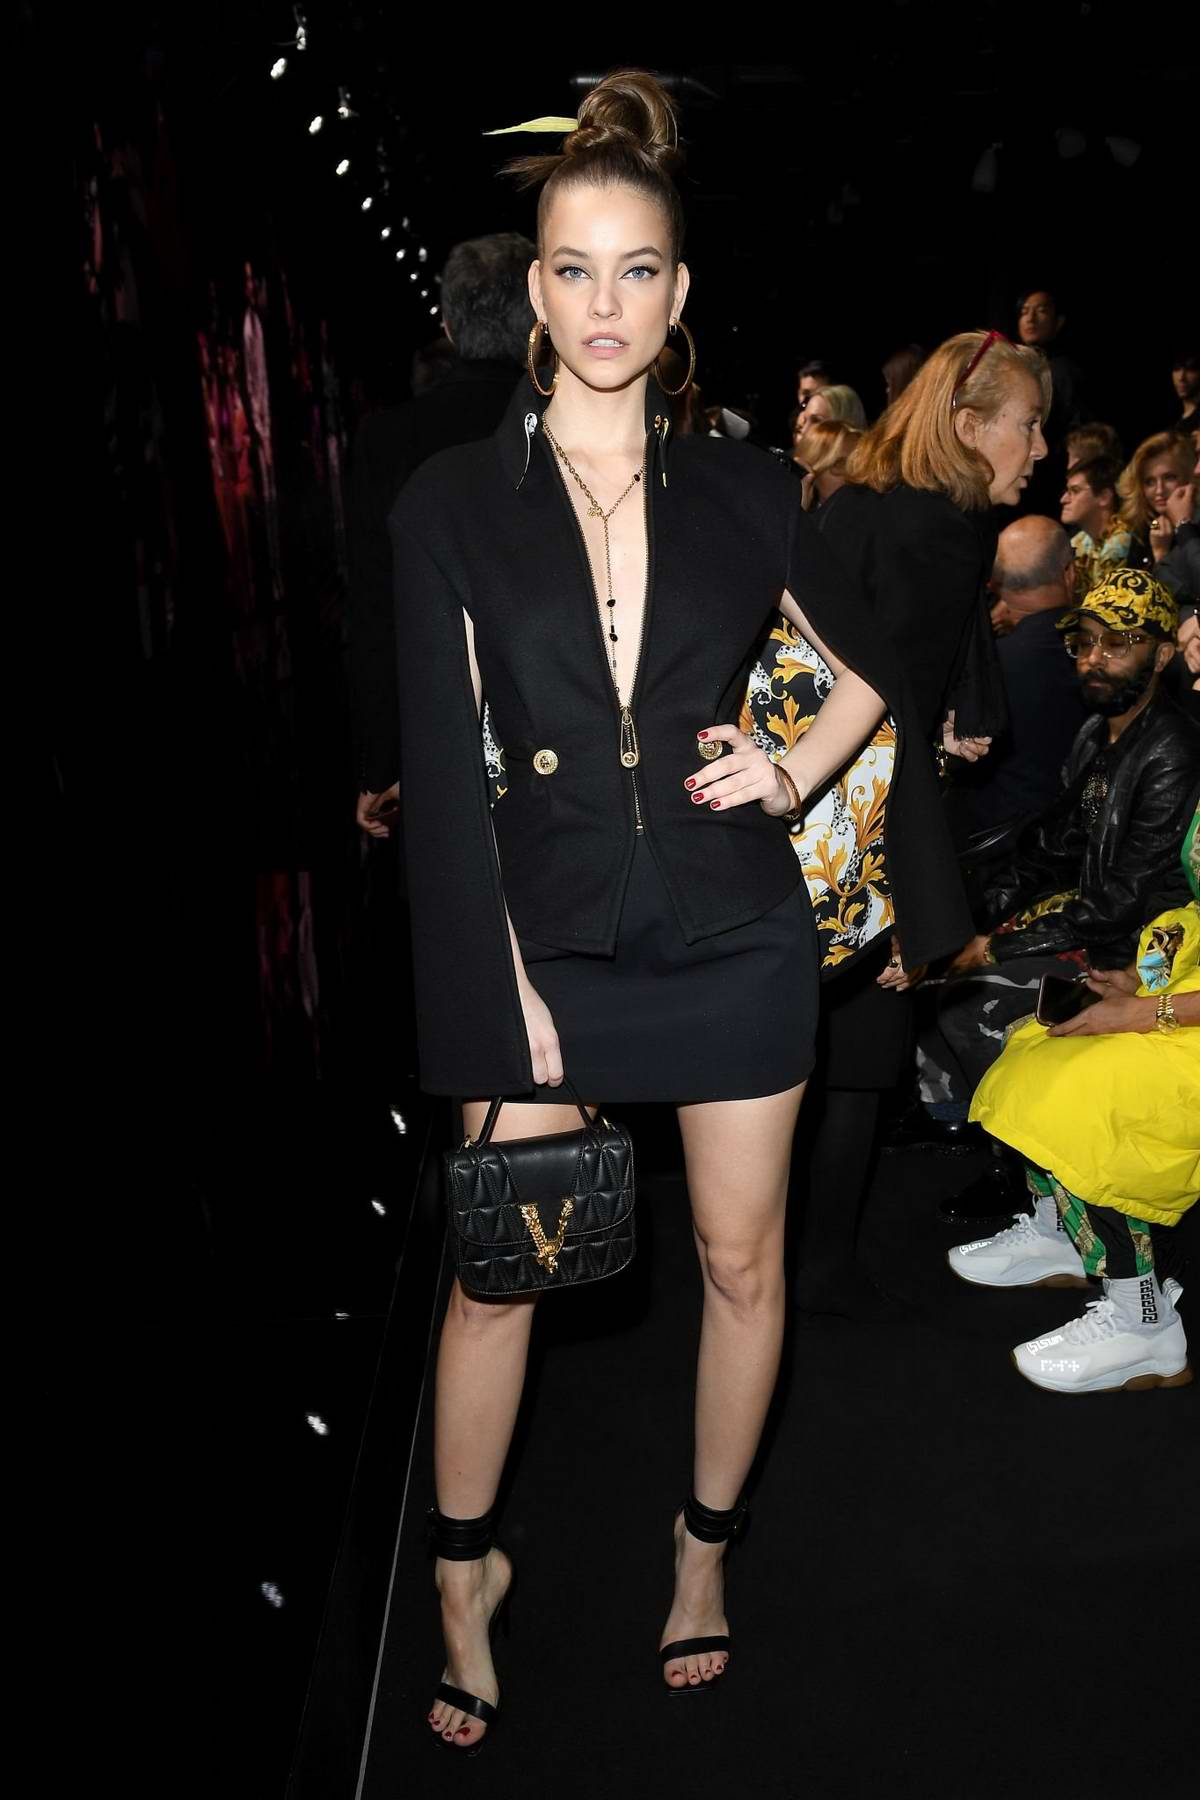 Barbara Palvin attends the Versace fashion show, F/W 2020 during Milan Fashion Week in Milan, Italy